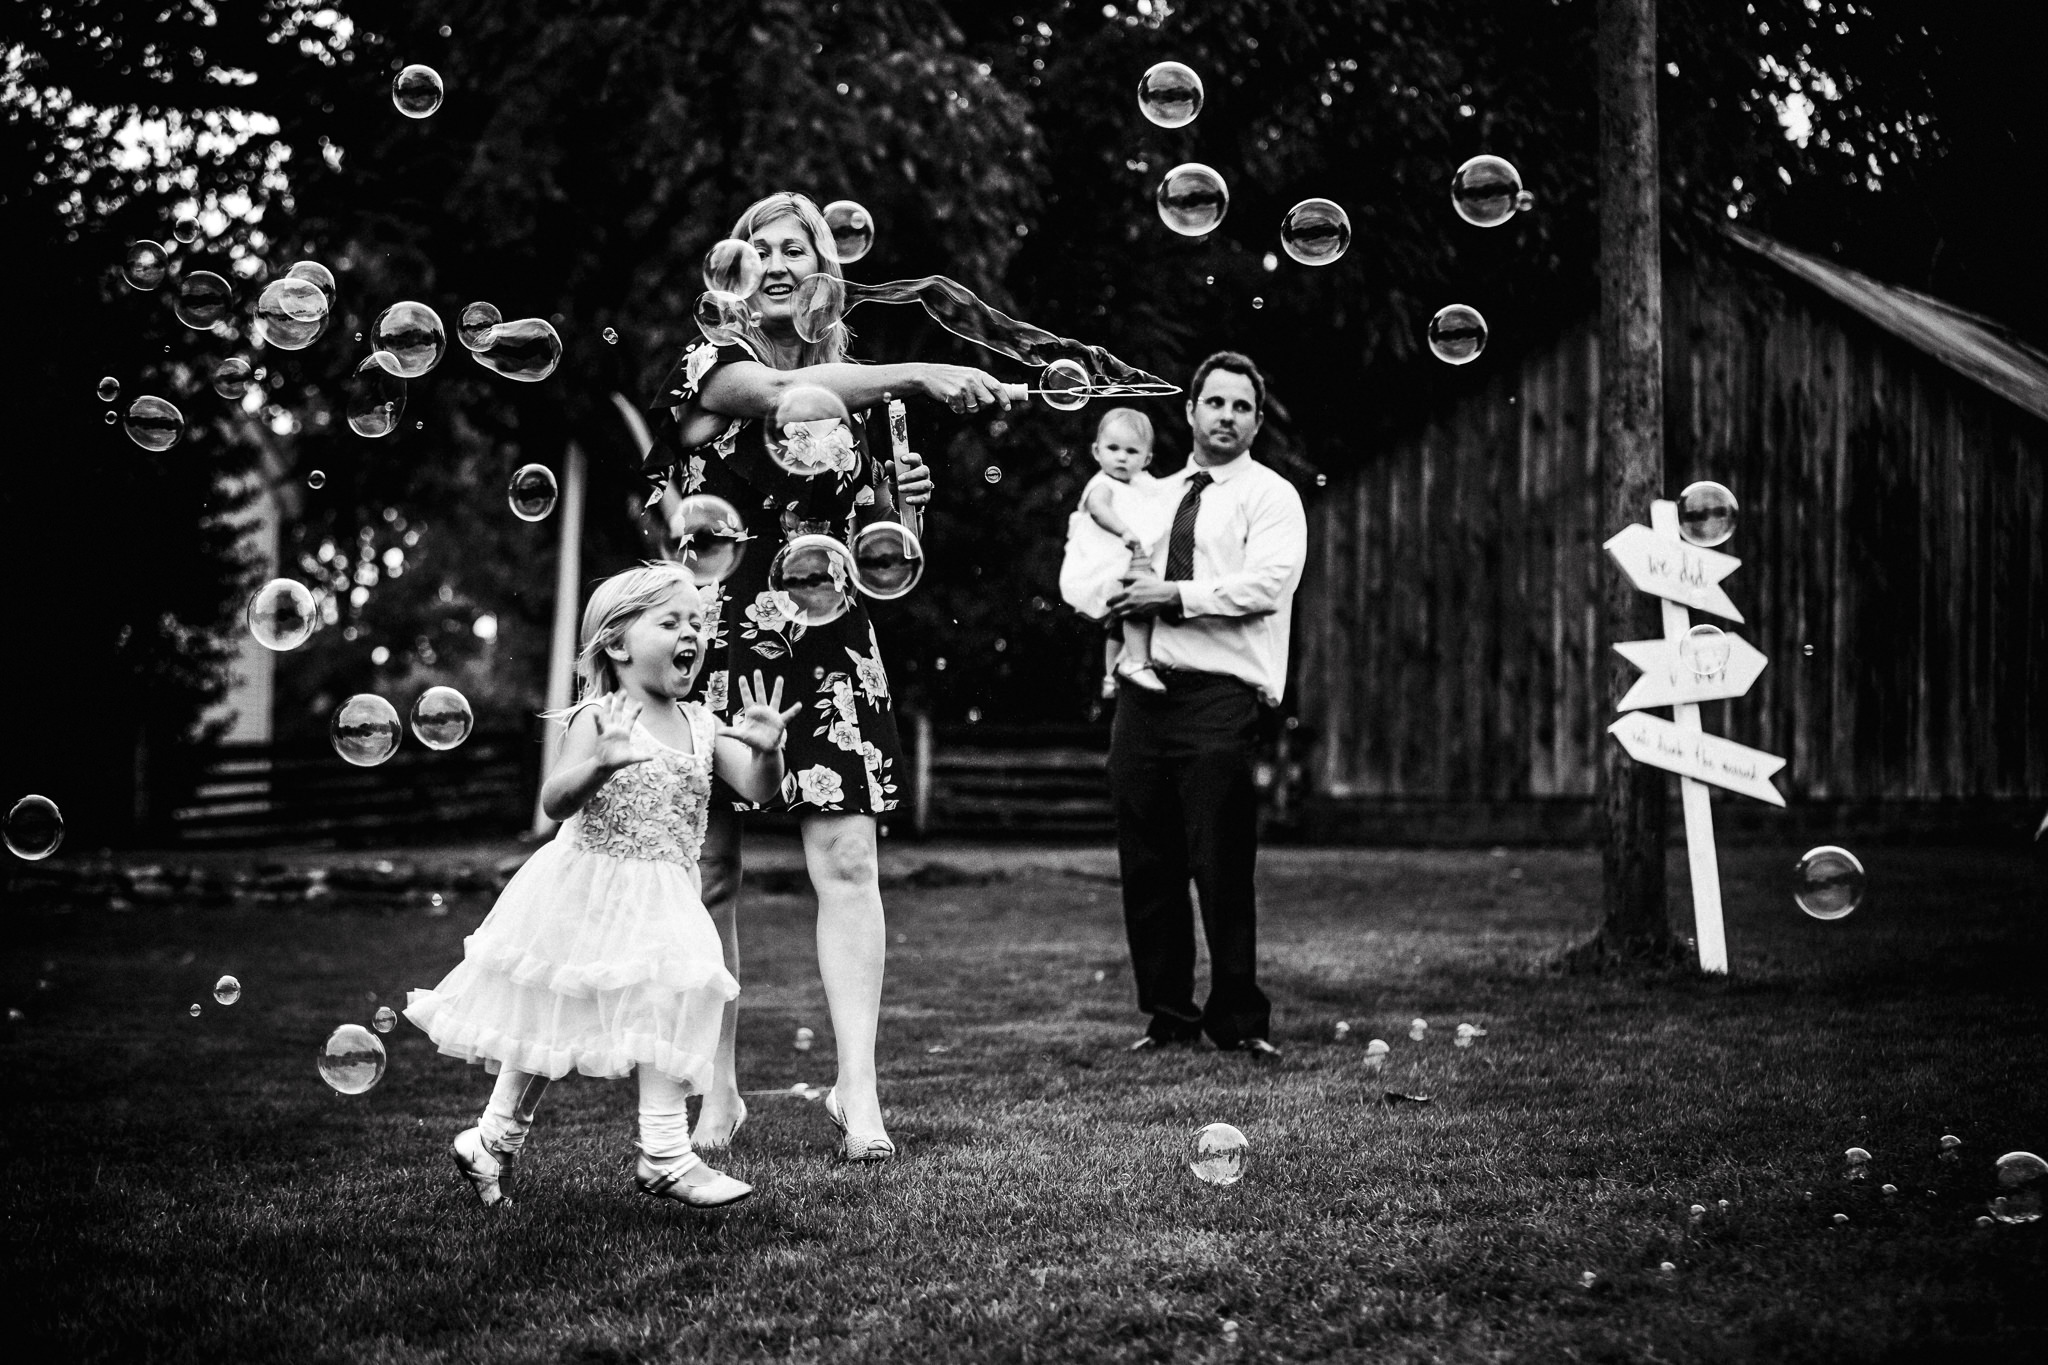 Flower girl chasing bubbles at outdoor wedding